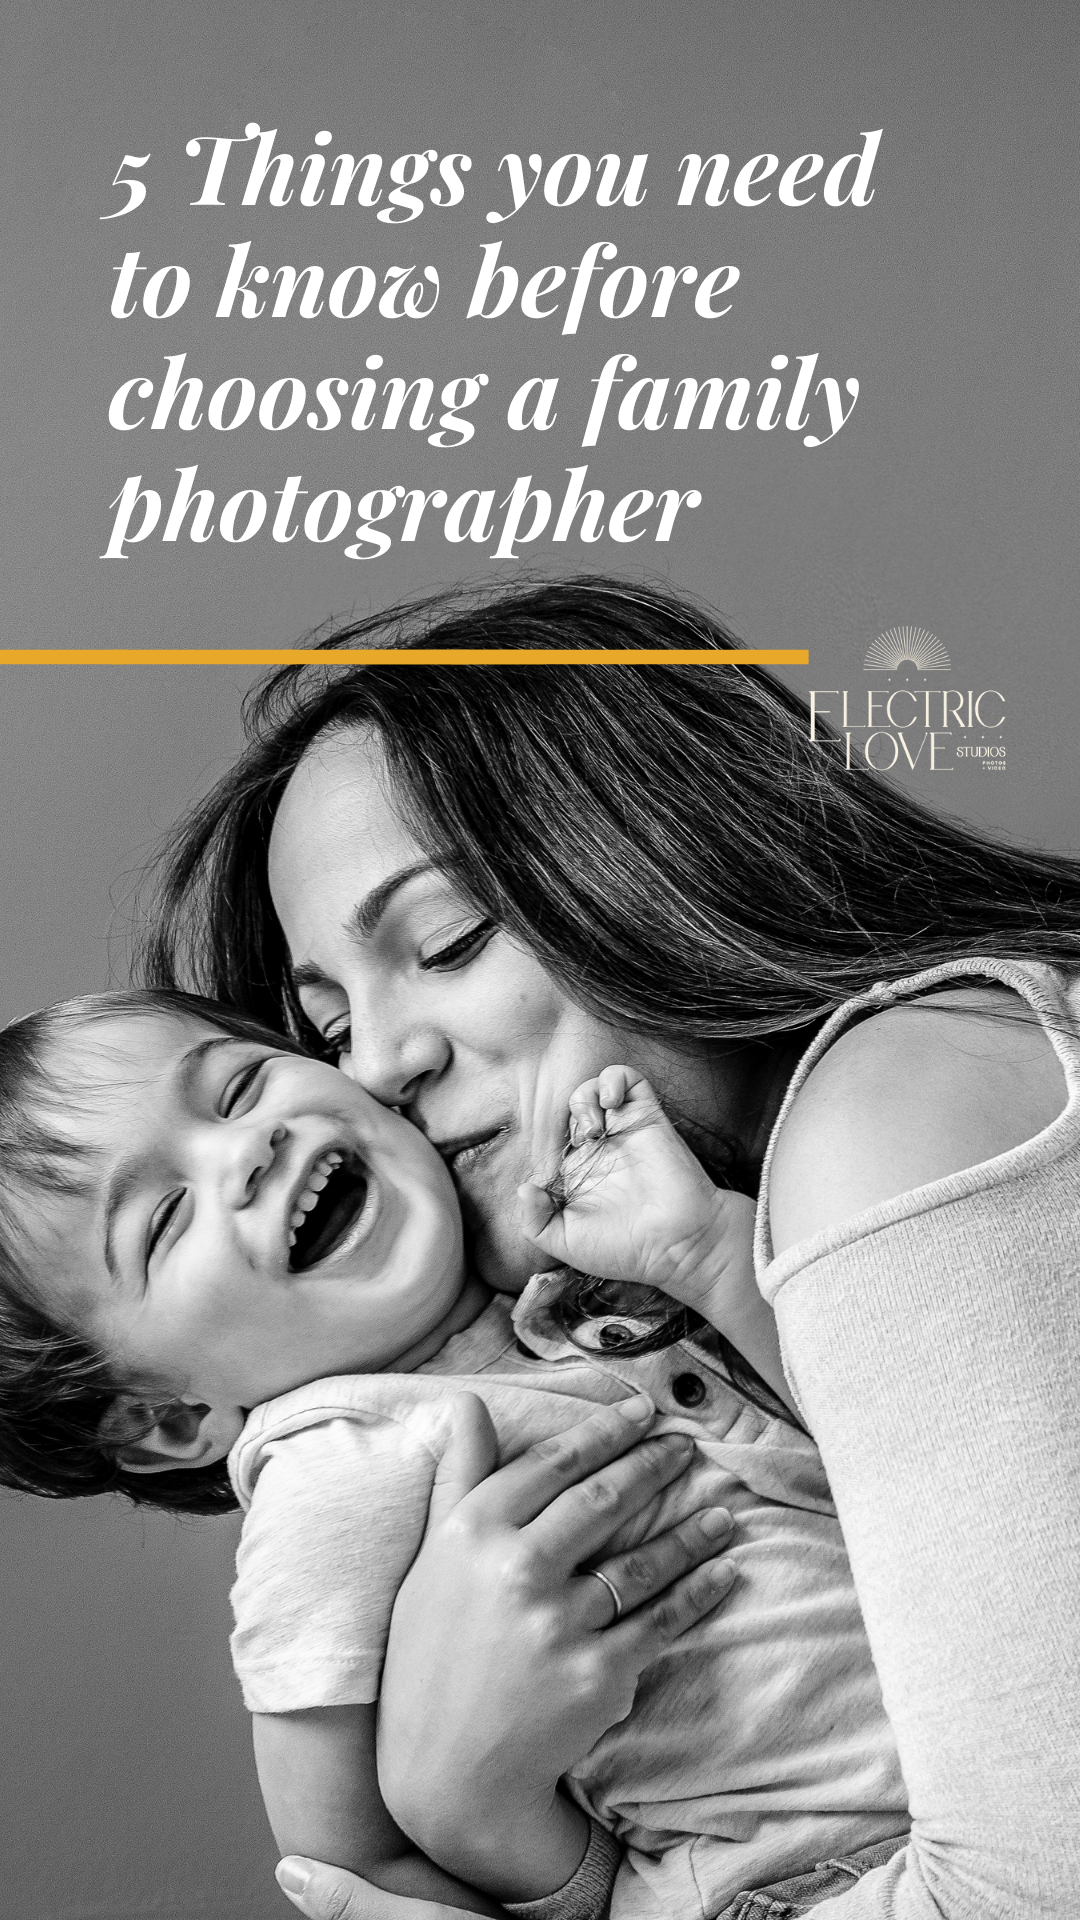 7-things-you-need-to-know-before-choosing-a-family-photographer